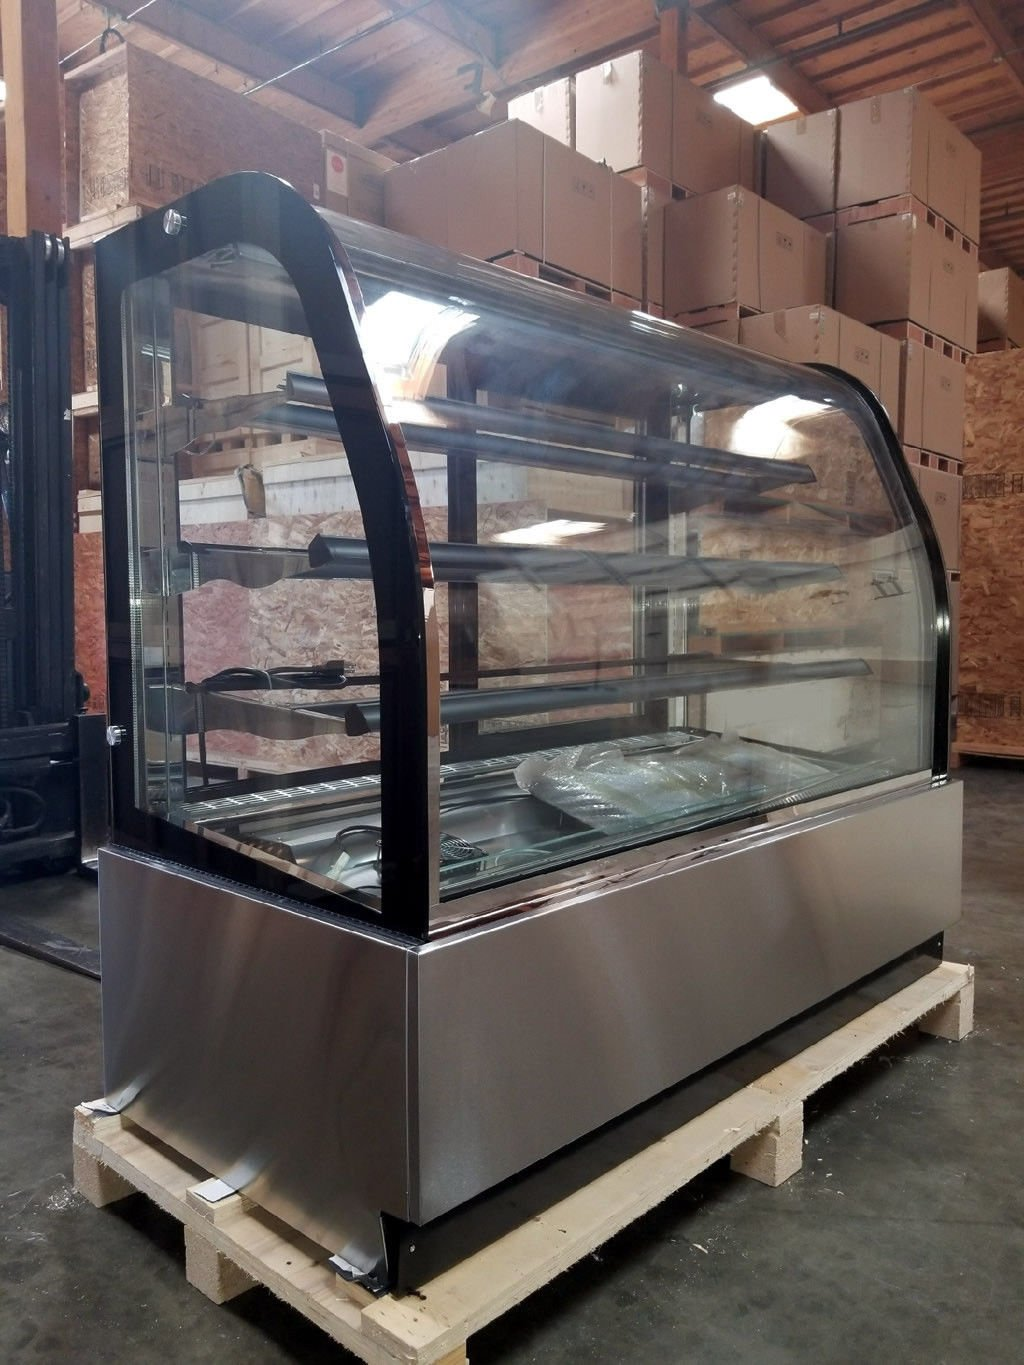 """59"""" Curved Glass Stainless Steel Deli Cake Display Refrigerator Full Size"""